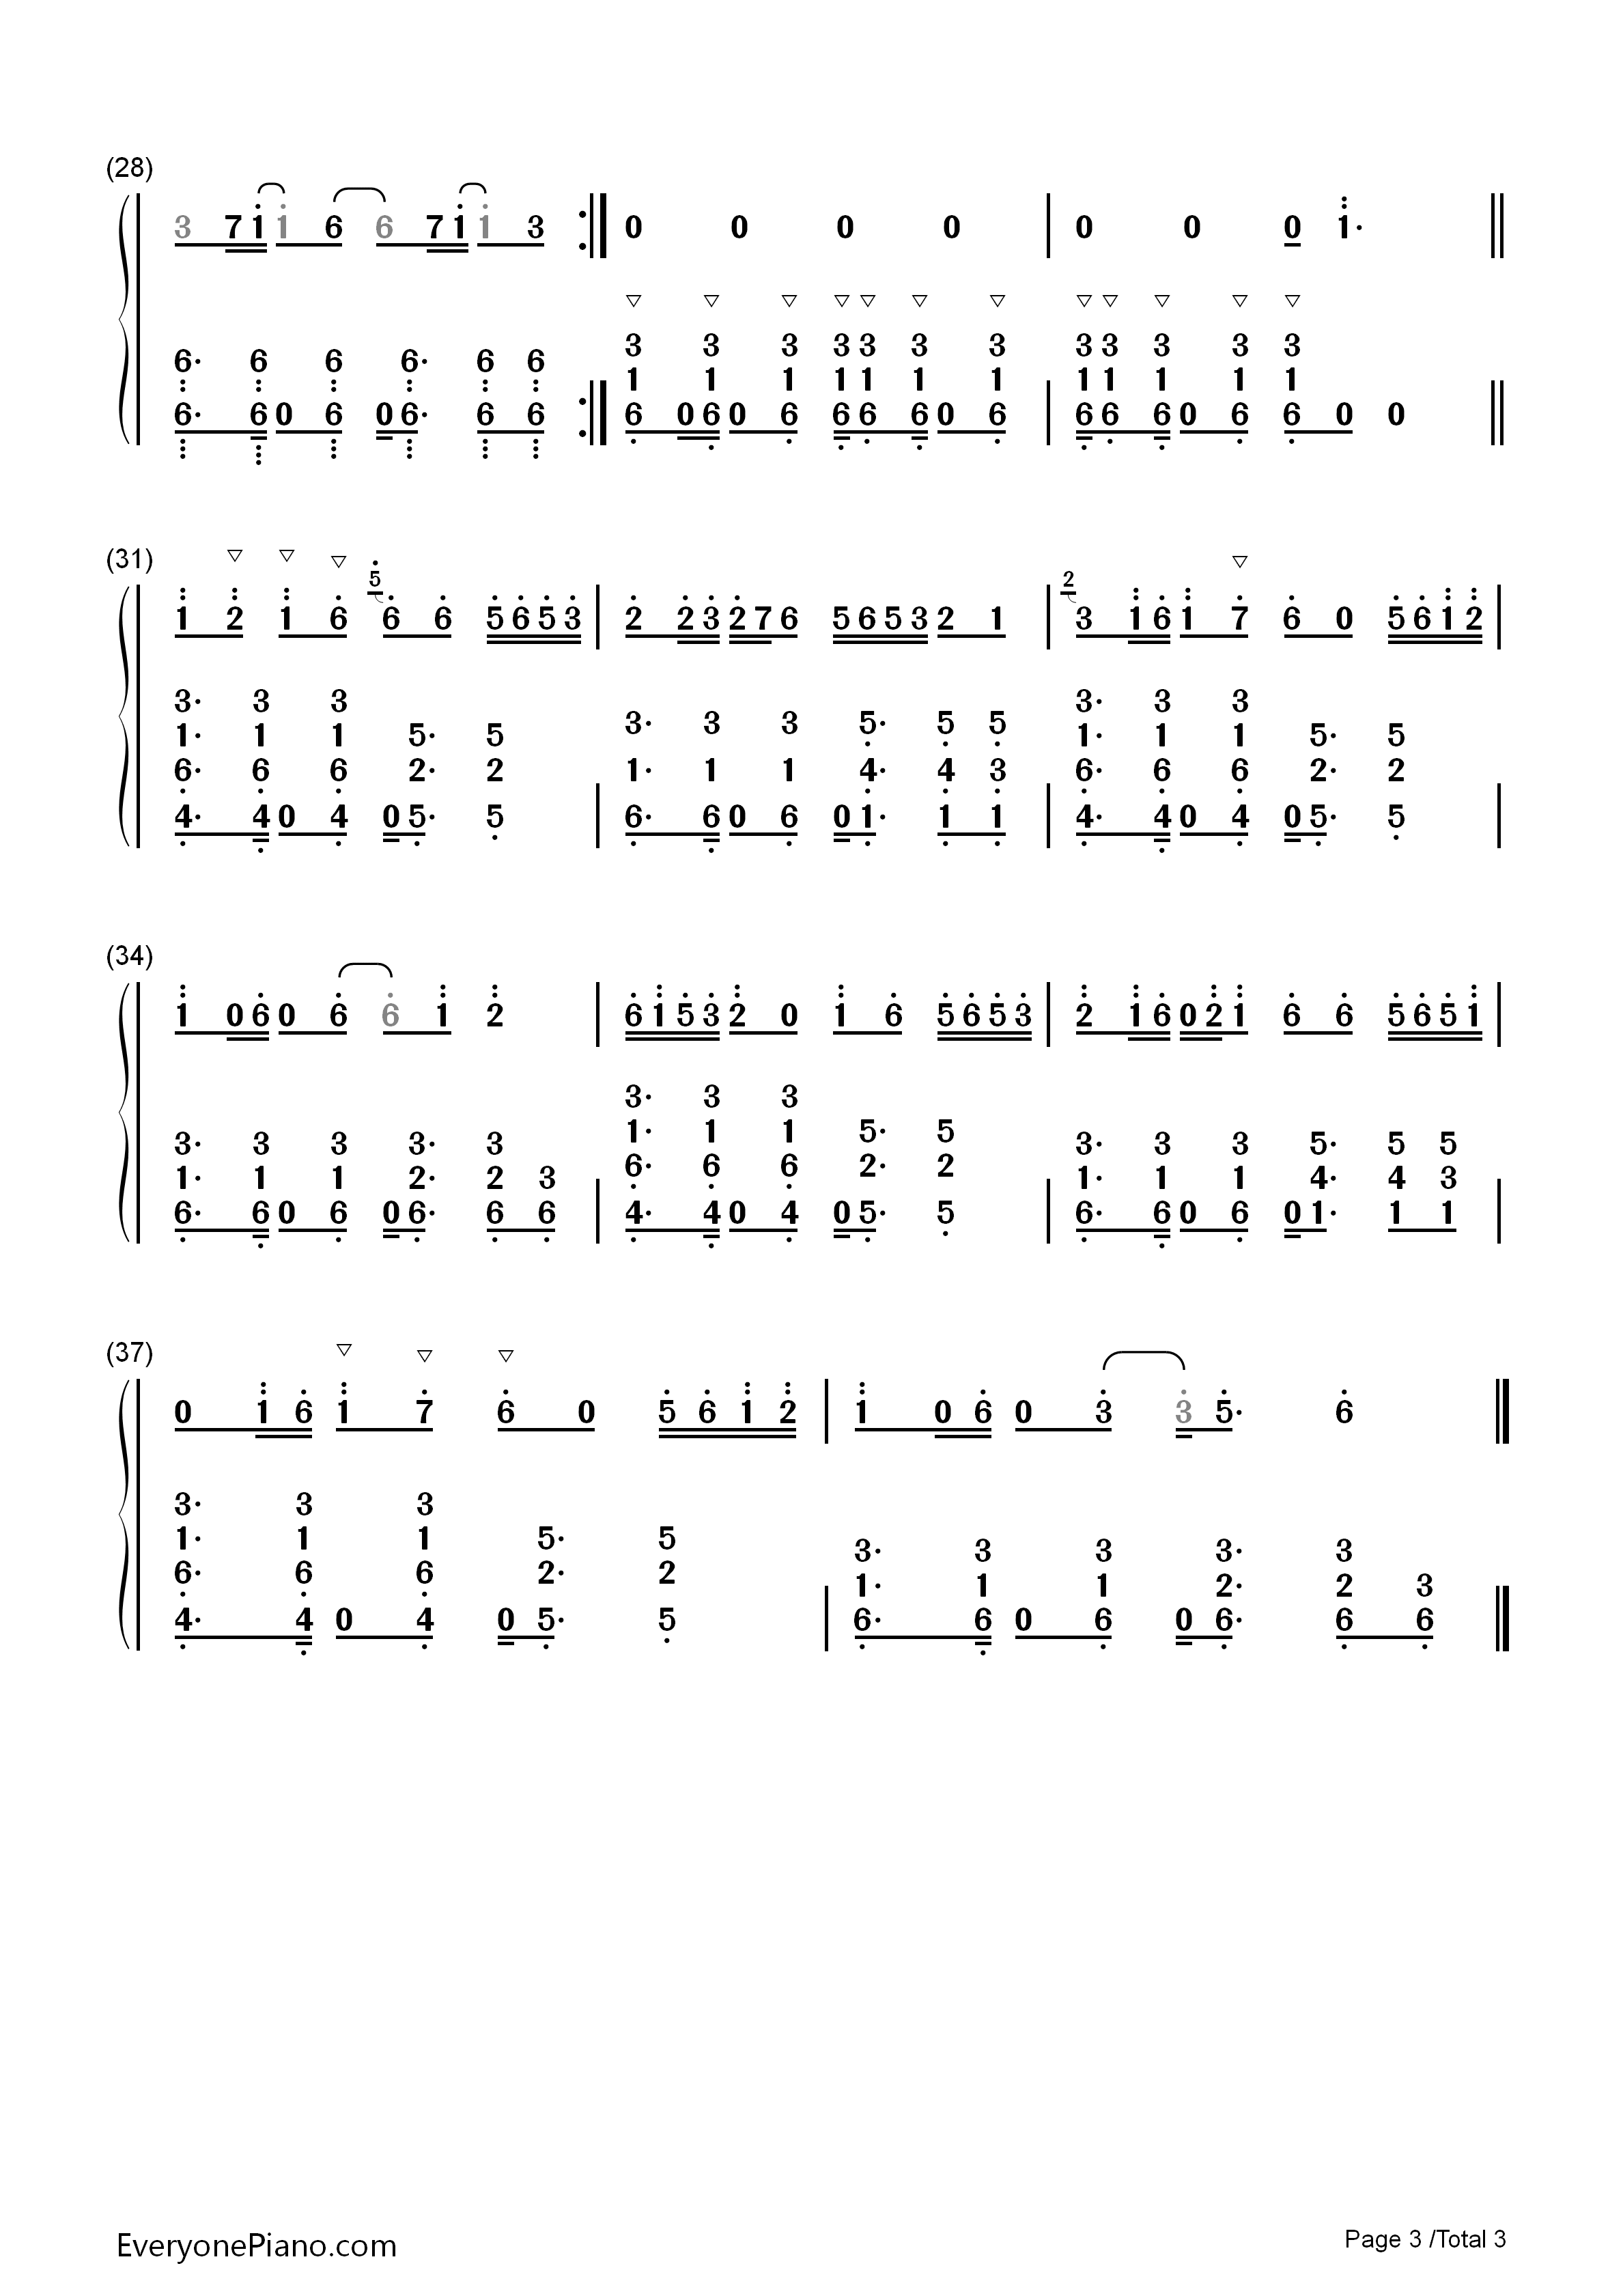 Lean On-Major Lazer Numbered Musical Notation Preview 3-Free Piano Sheet Music u0026 Piano Chords